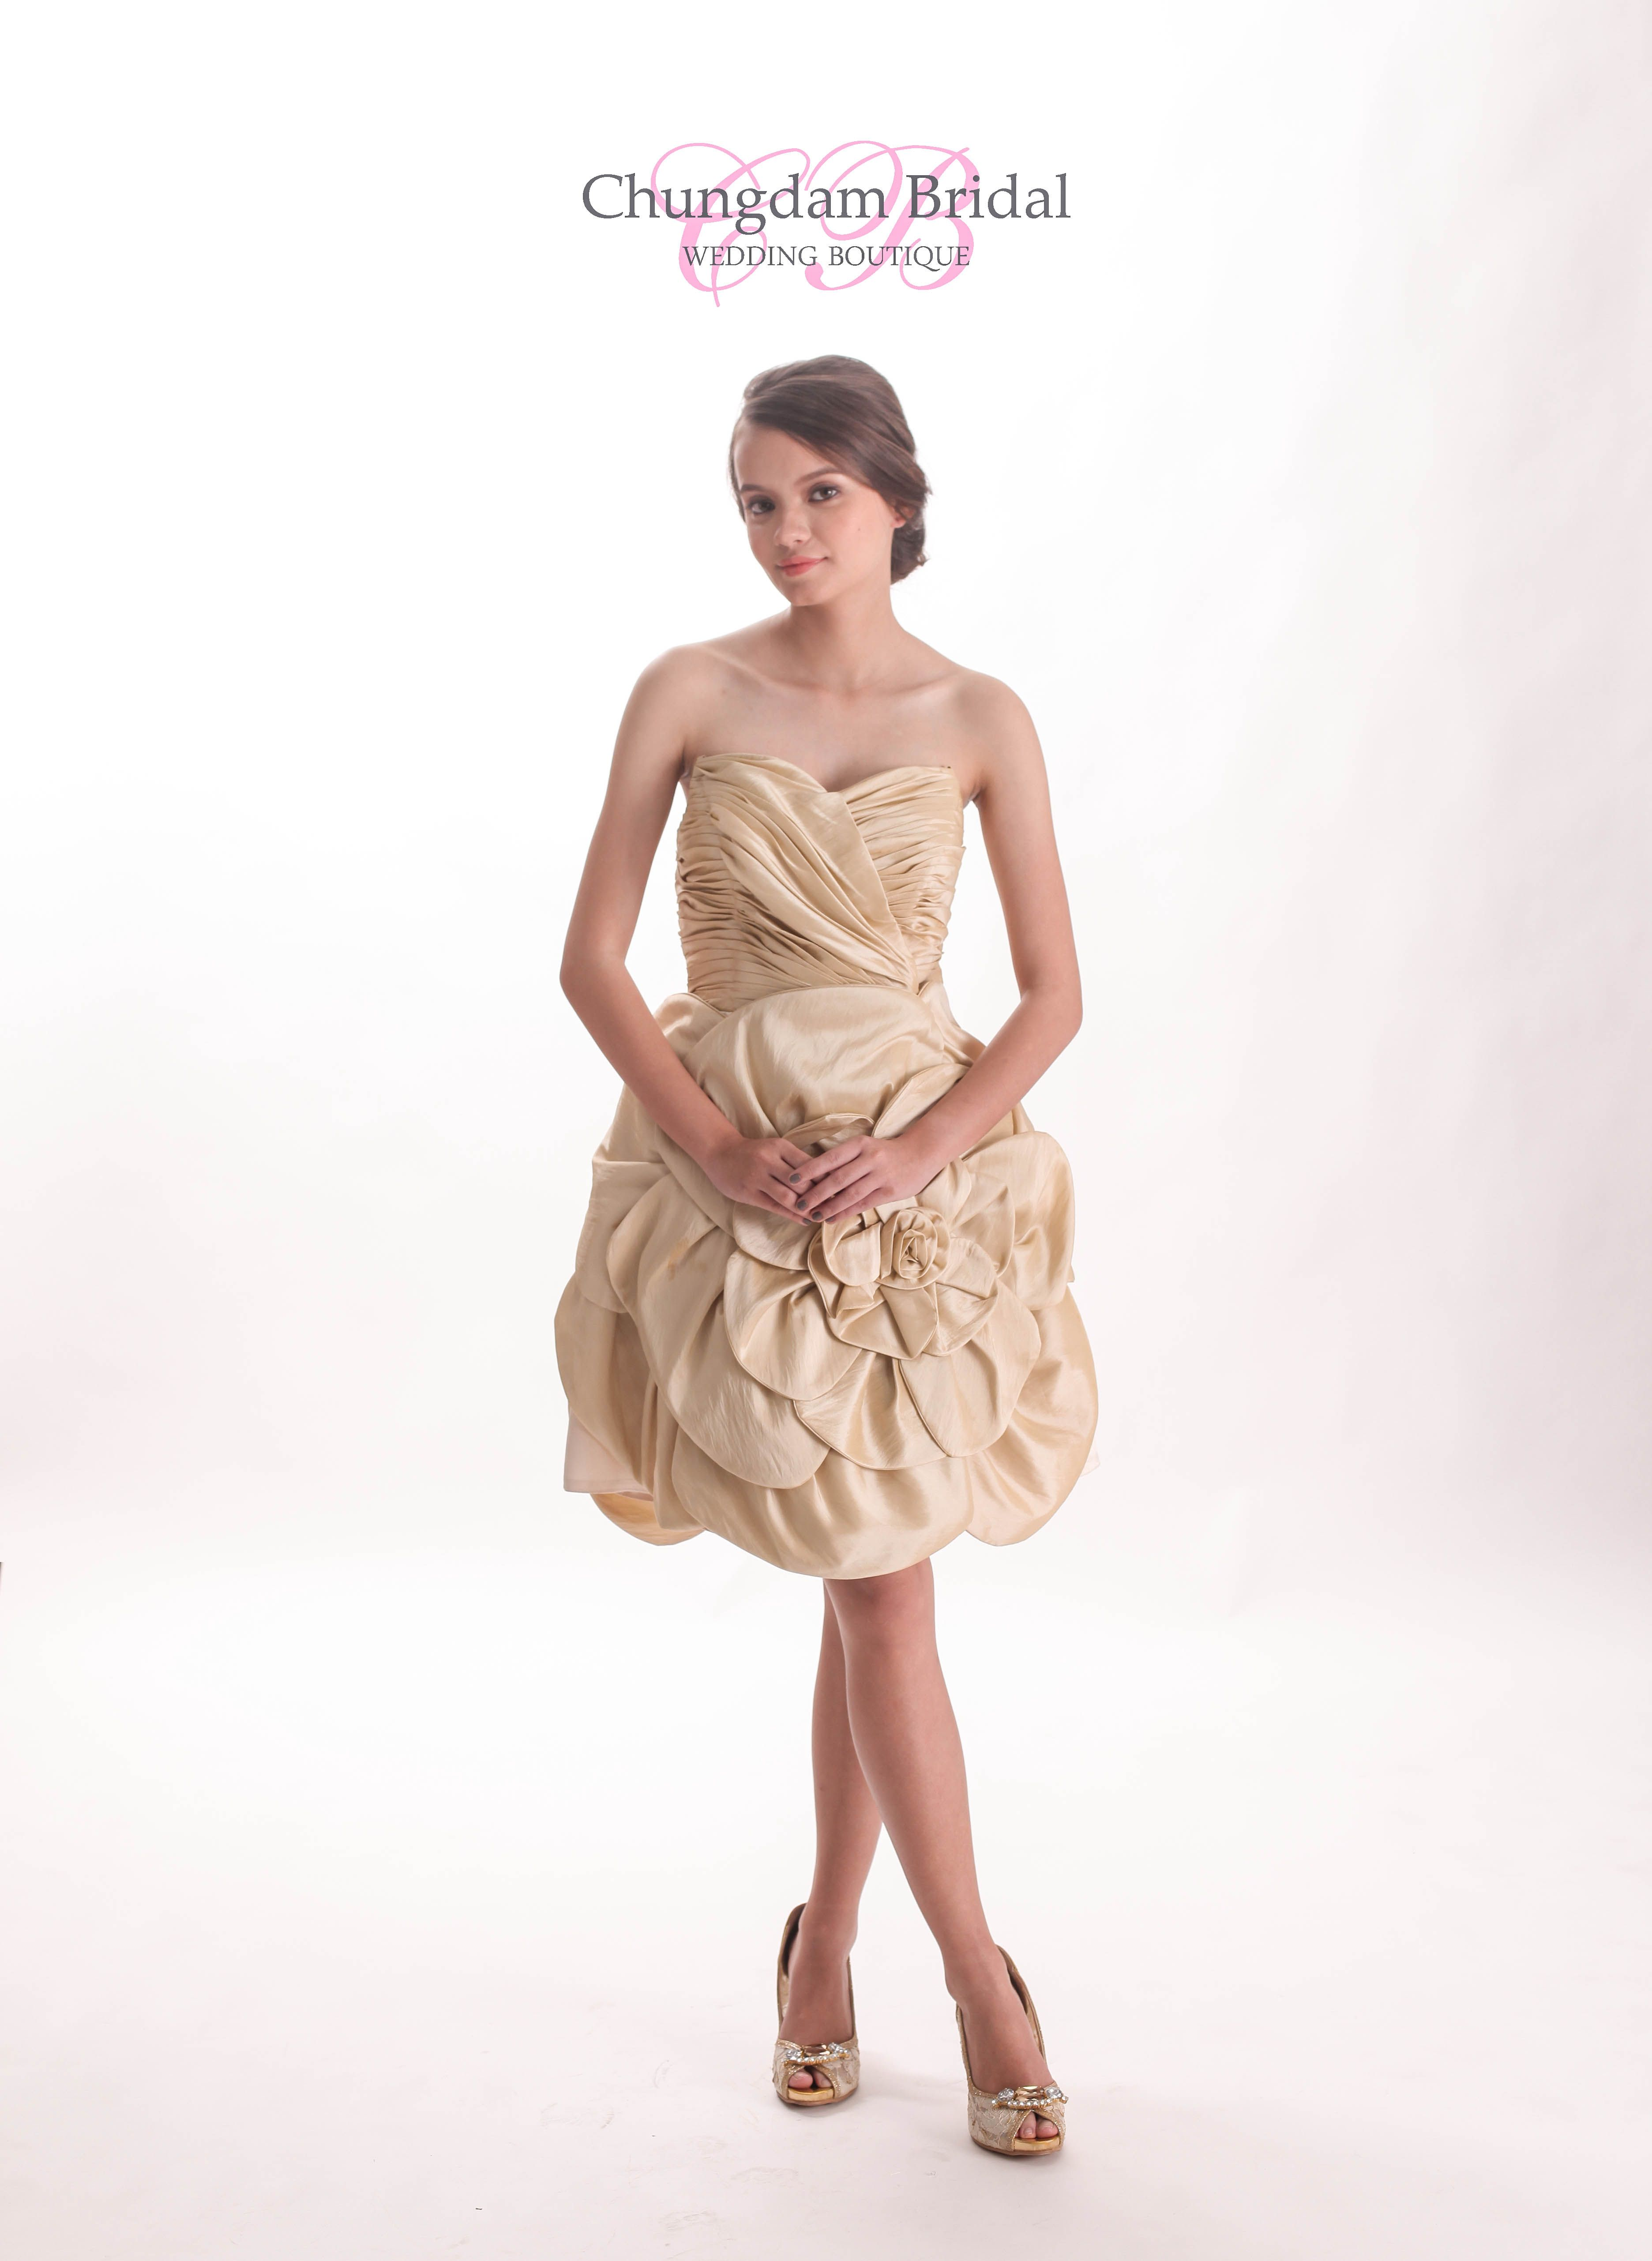 Are You Having A Simple Wedding Looking For Quality Made But Affordable Mini Dress